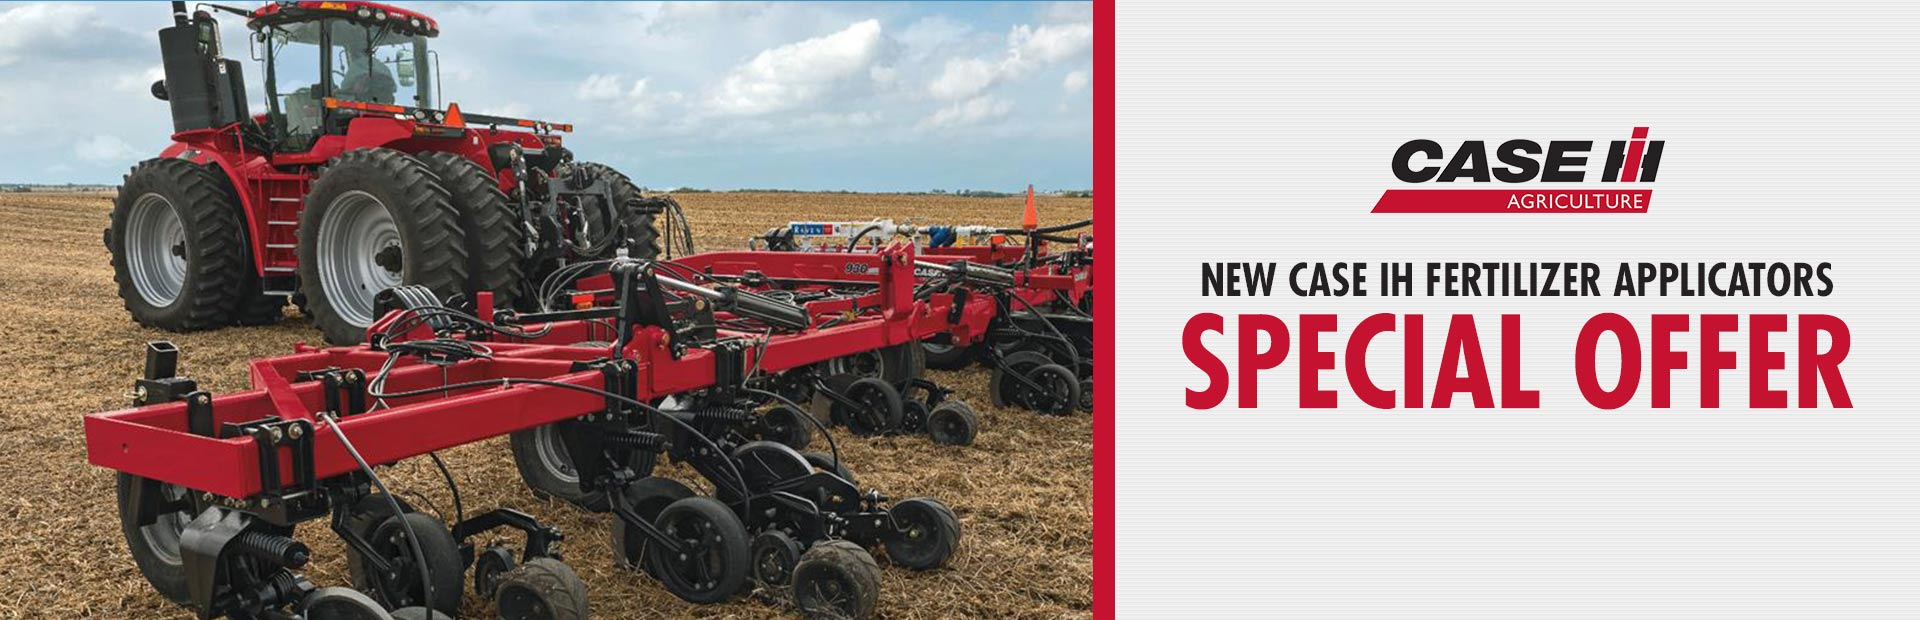 Case IH: New Case IH Fertilizer Applicators Special Offer